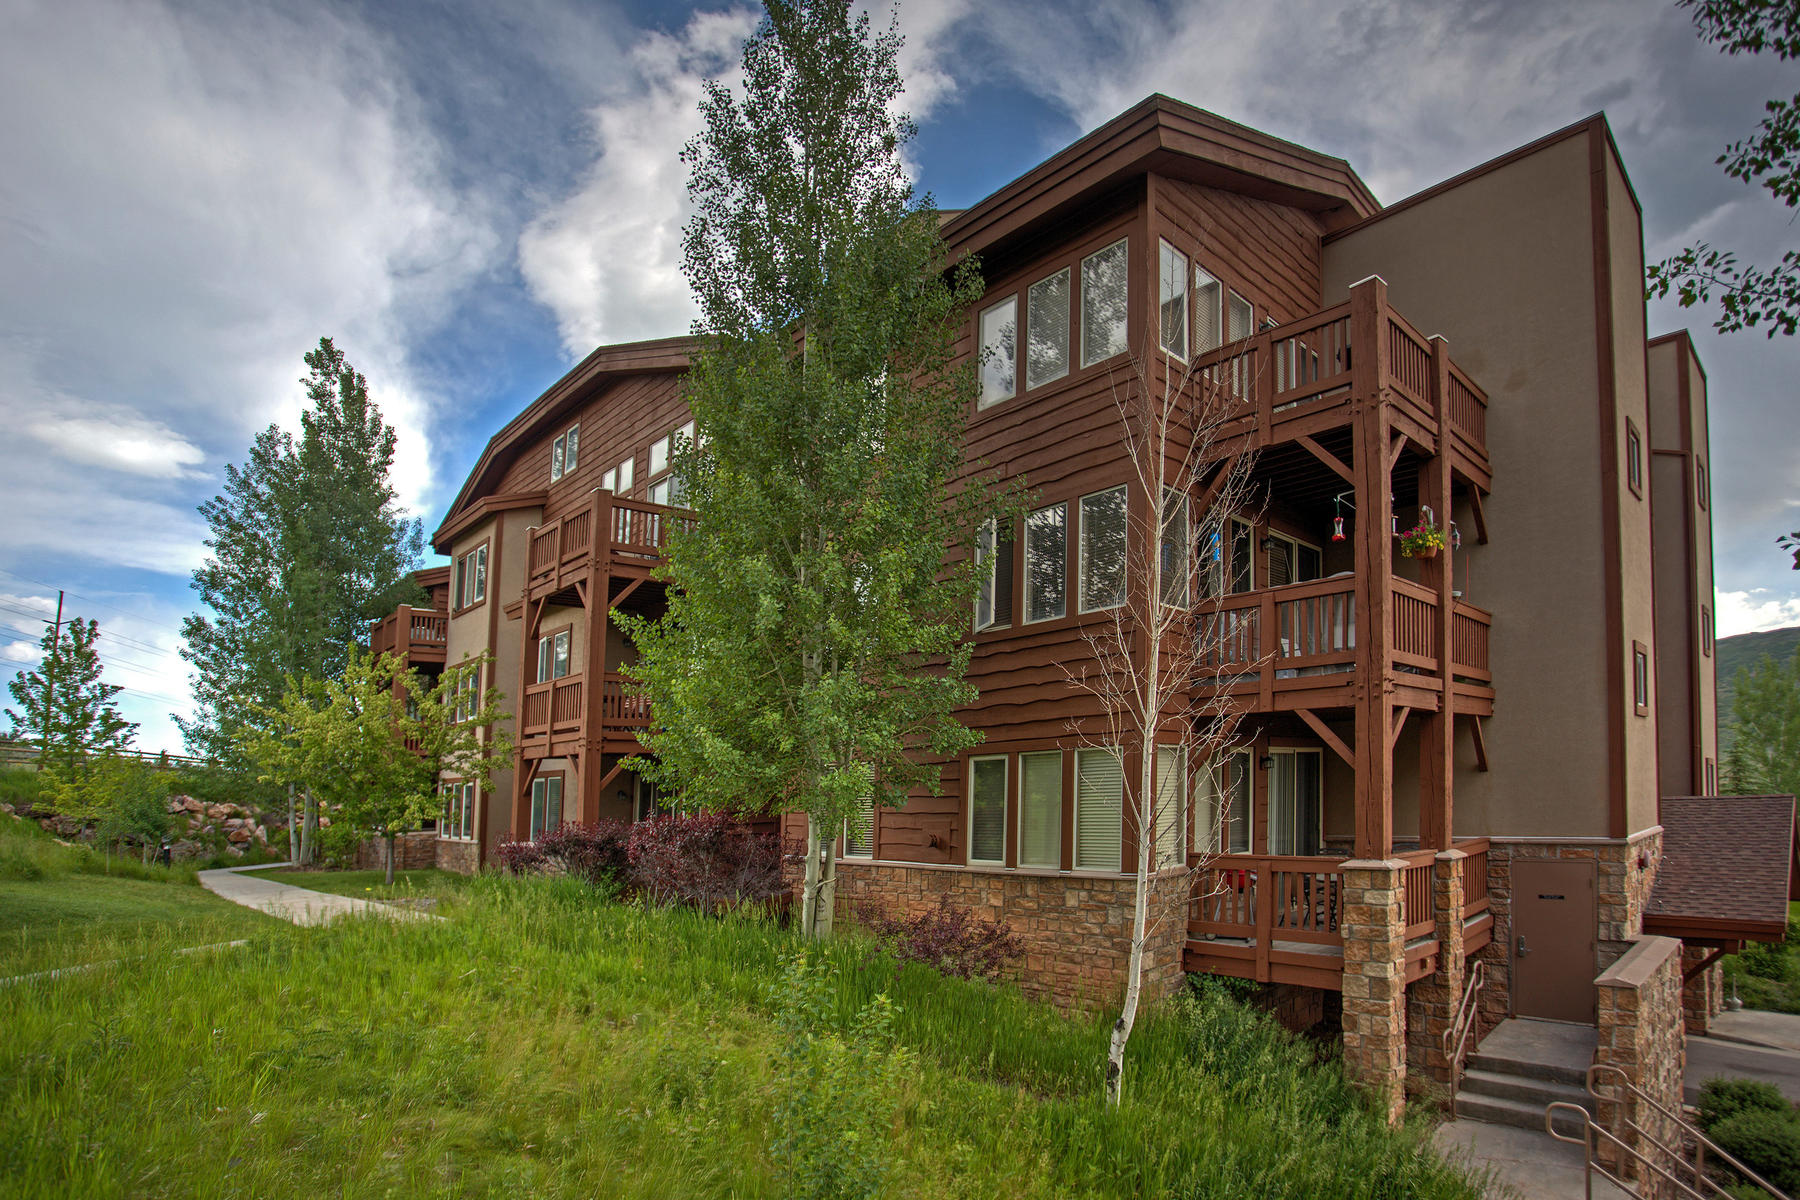 Copropriété pour l Vente à 1 Bed/2 Bath Condo with Views & Garage 6677 N 2200 West C-206 Park City, Utah, 84098 États-Unis